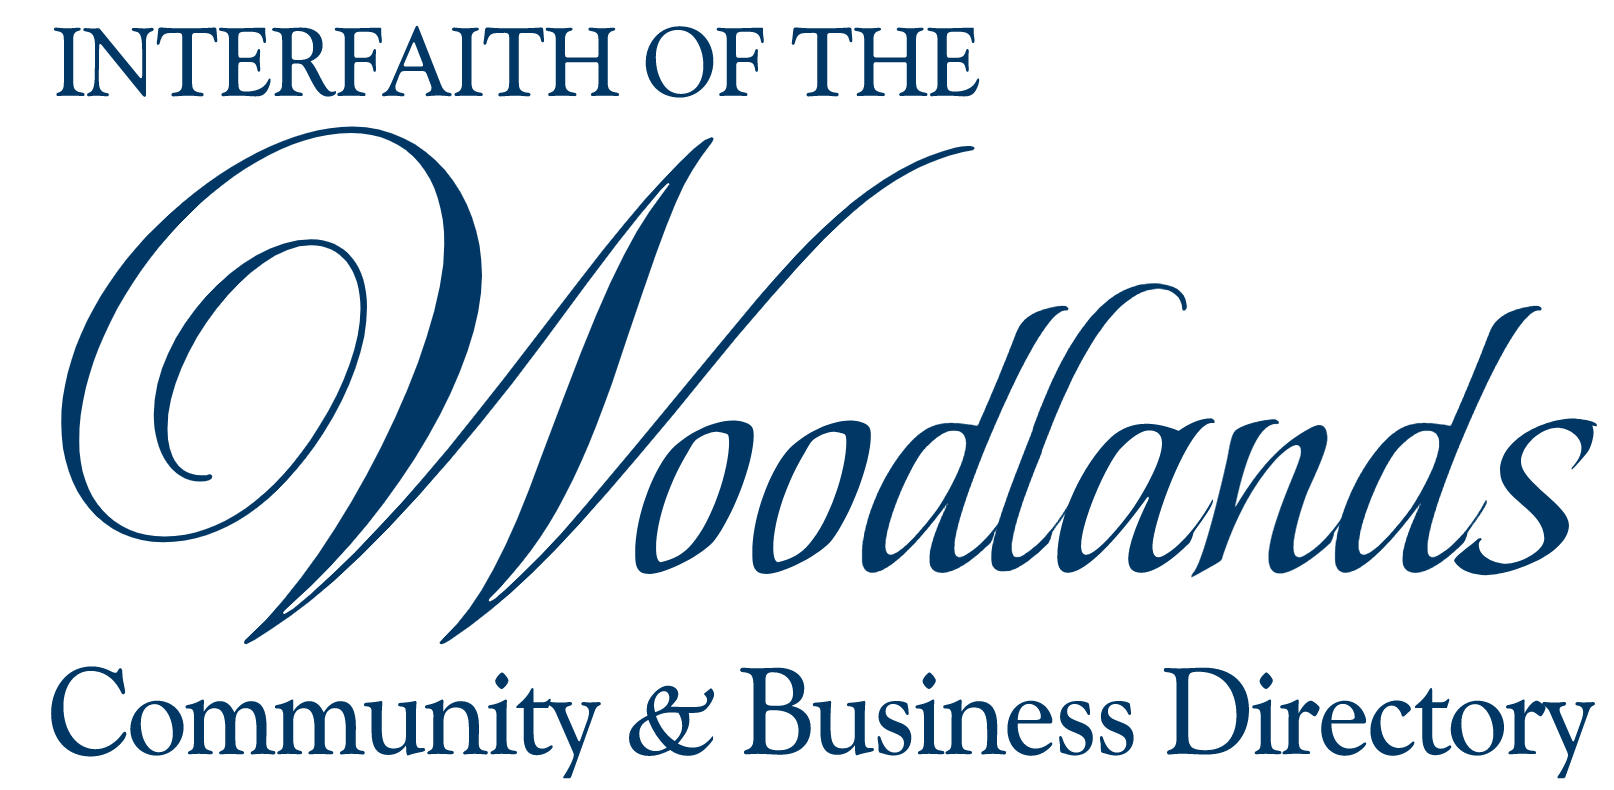 Interfaith of the Woodlands Community & Business Directory Logo